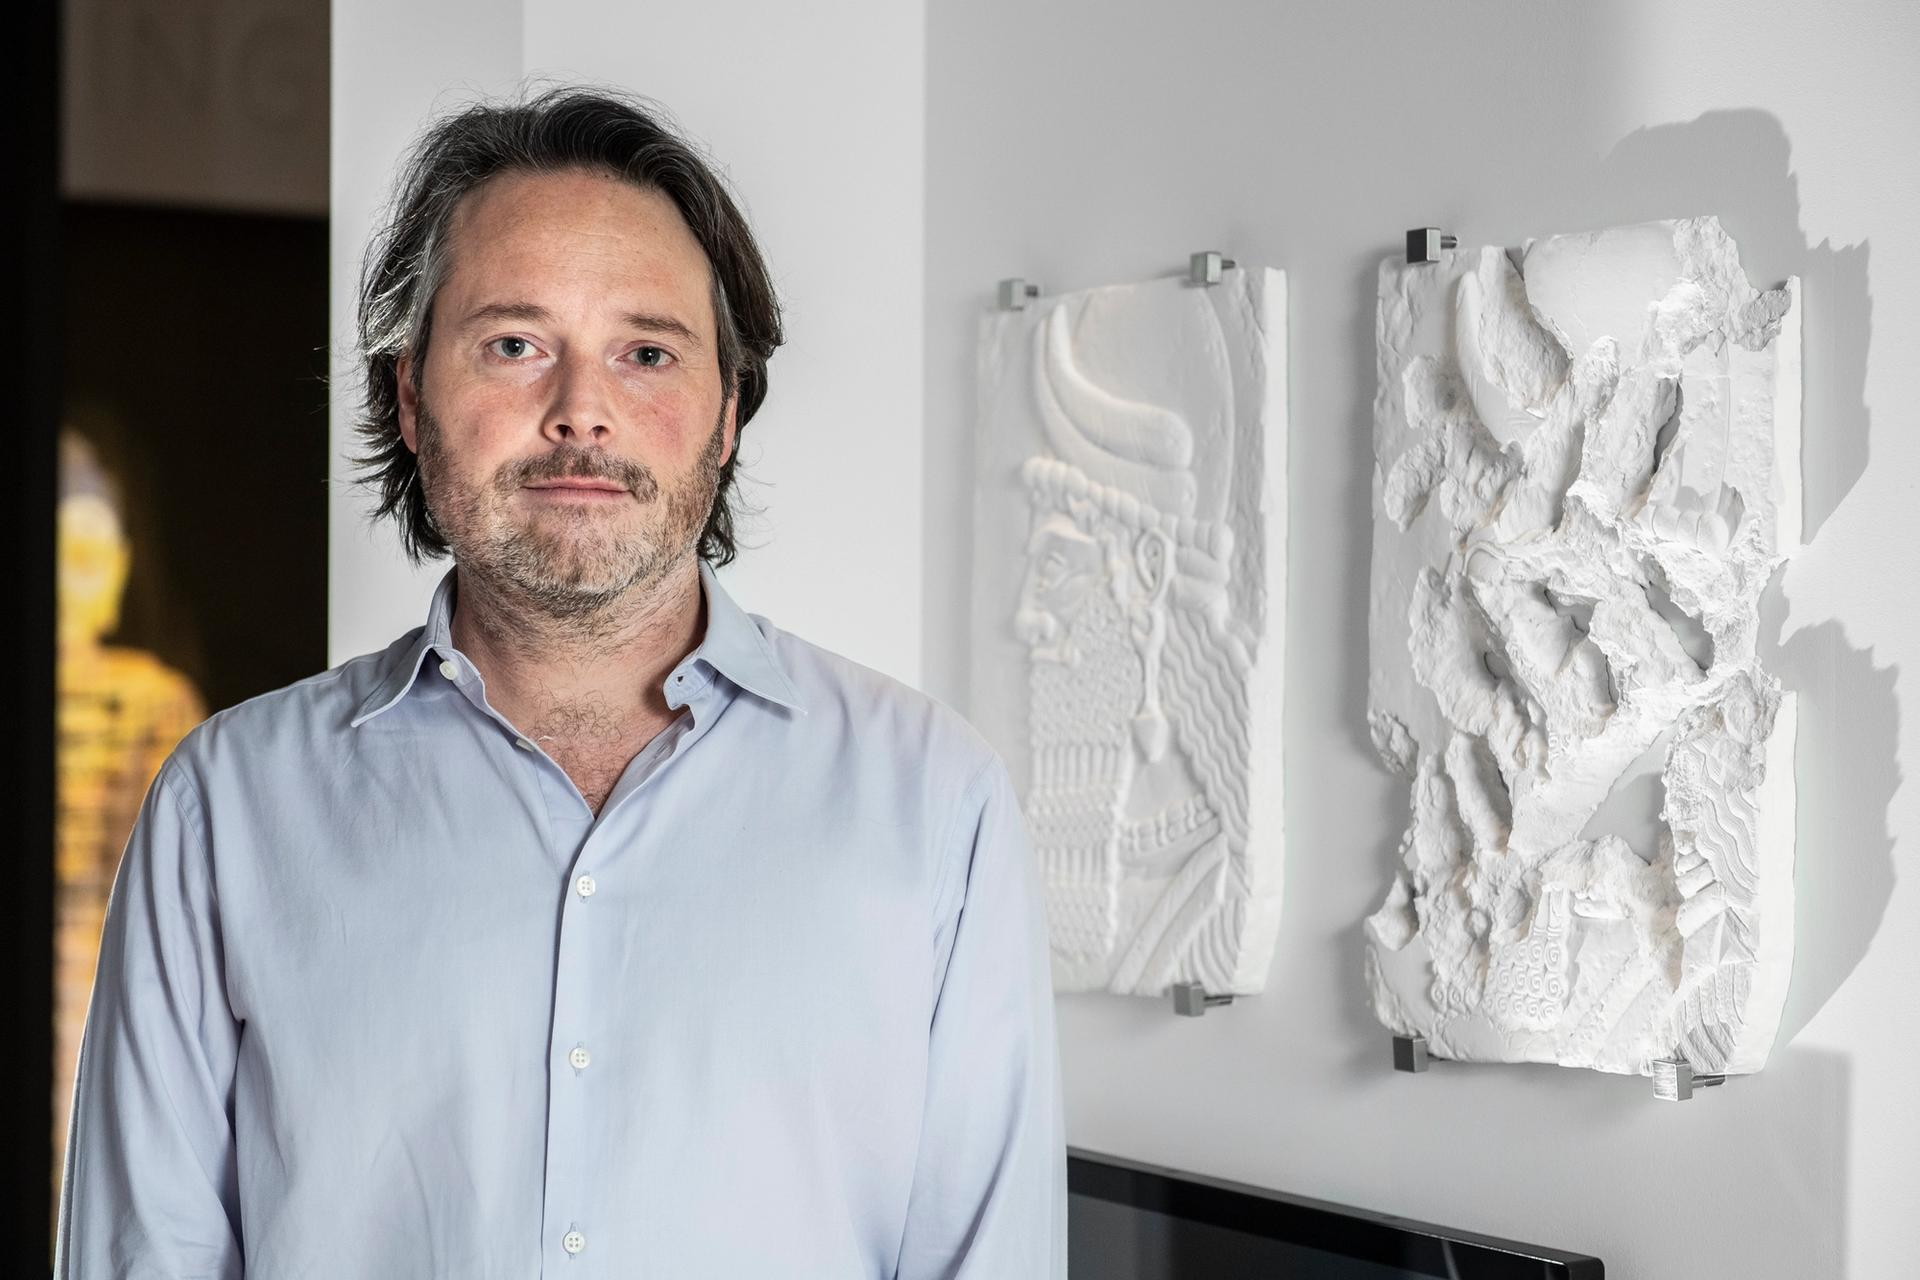 The British artist Piers Secunda with his work ISIS Damage Painting (Genie Head) (2019) at London's Imperial War Museum © IWM